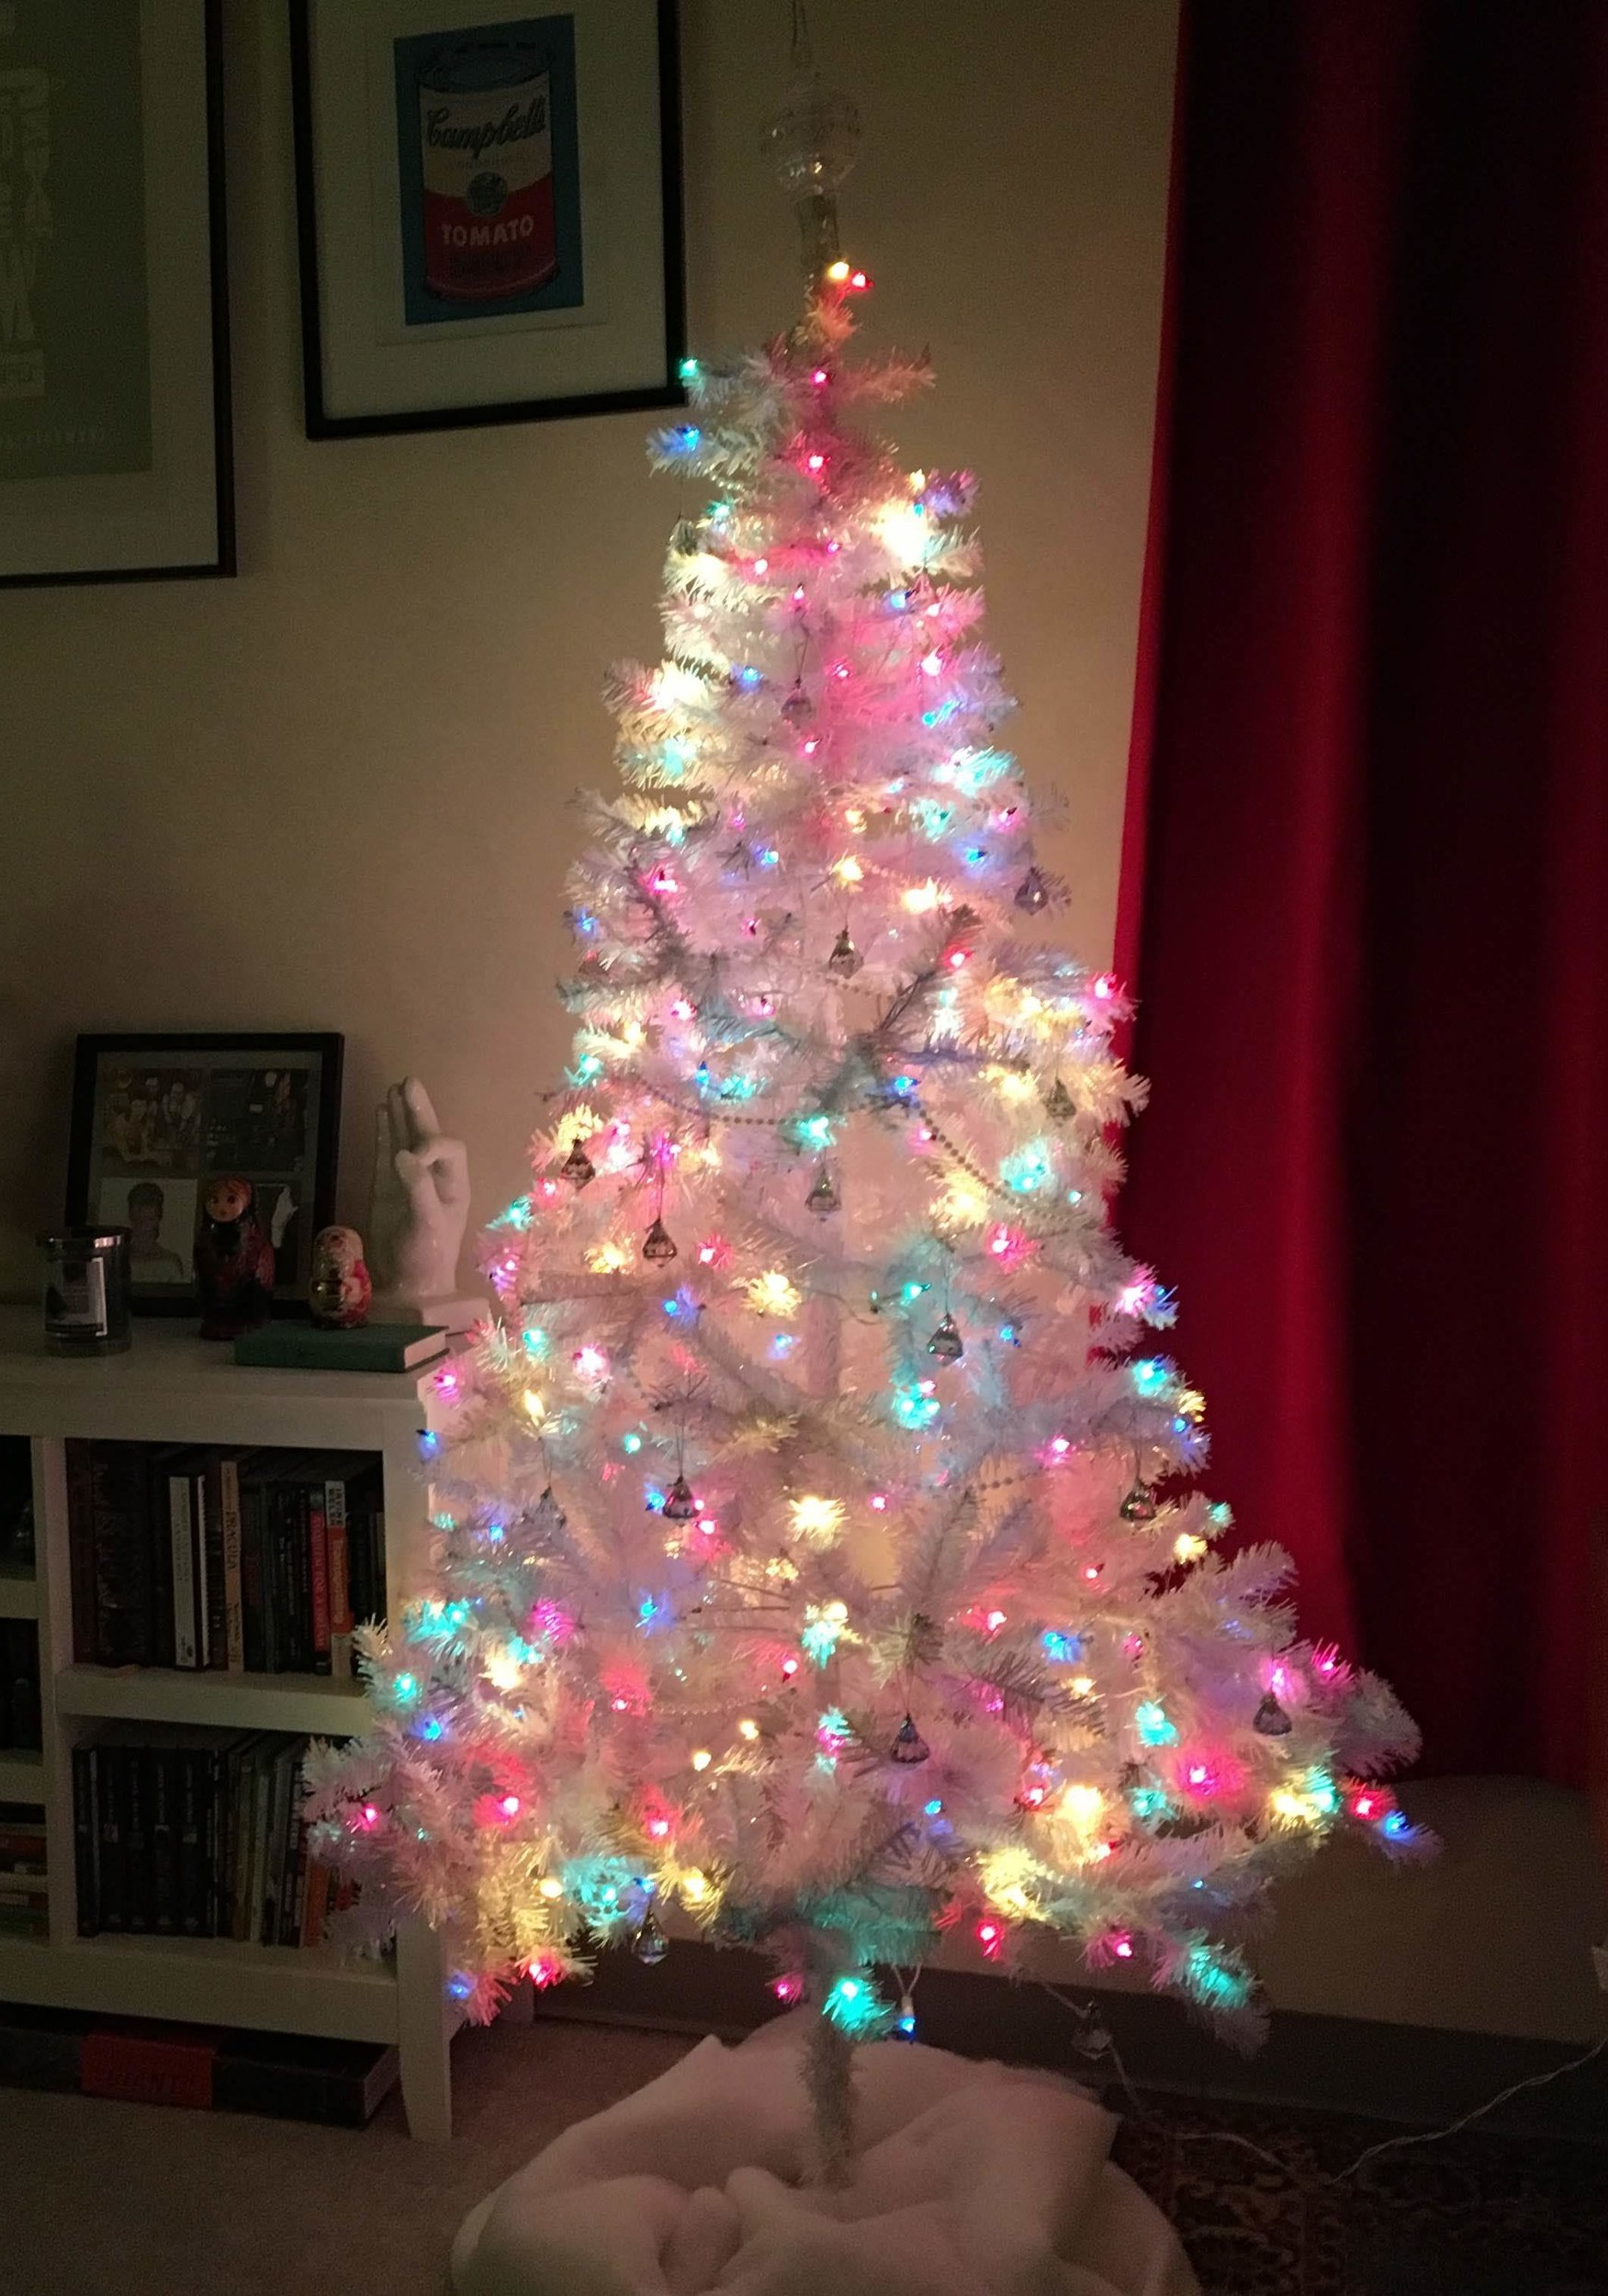 Things I love about this Christmas tree: - - I won it- Doesn't drop pine needles- The colors aren't exclusively Christmassy, so I can use it for other holidays. I'm thinking an Easter Egg tree?! - I only had to sacrifice 1/2 of my dining space to fit it in my tiny-ass apartment.- I can put presents under it- It's mine and I won it